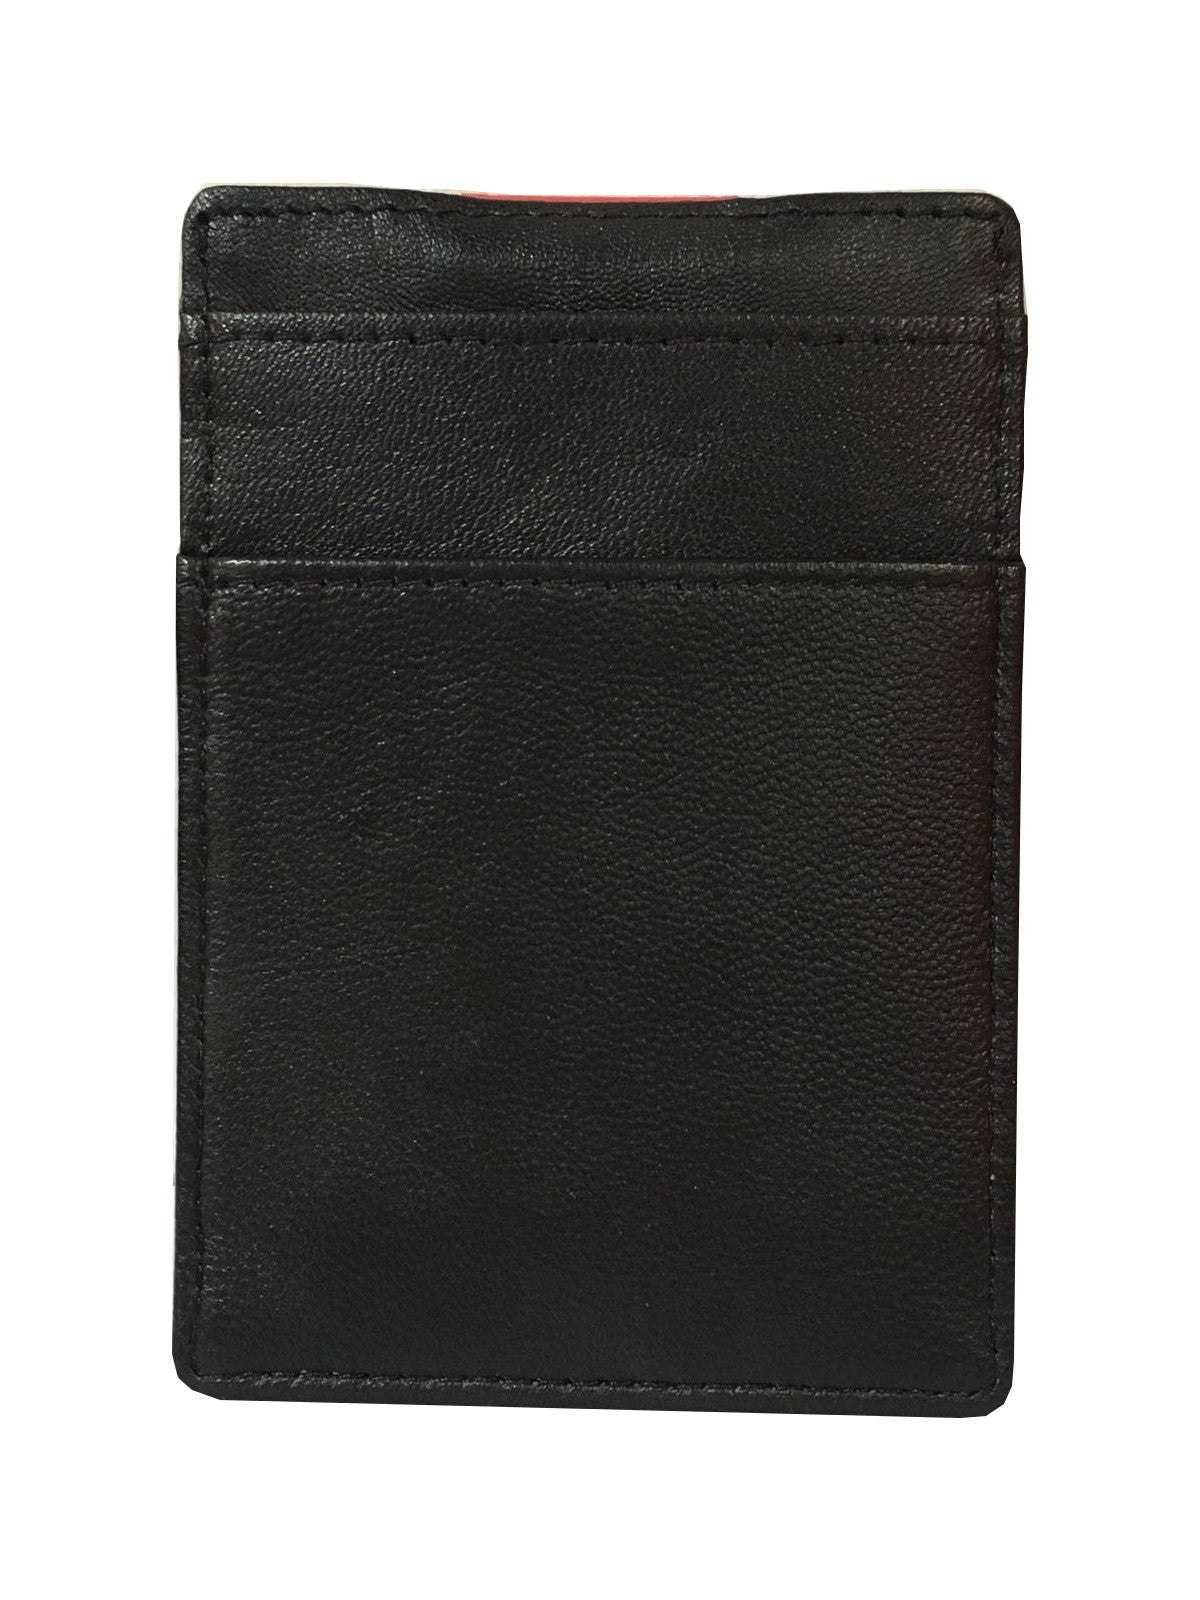 NFFC Black Leather Clip Card Holder - Nottingham Forest